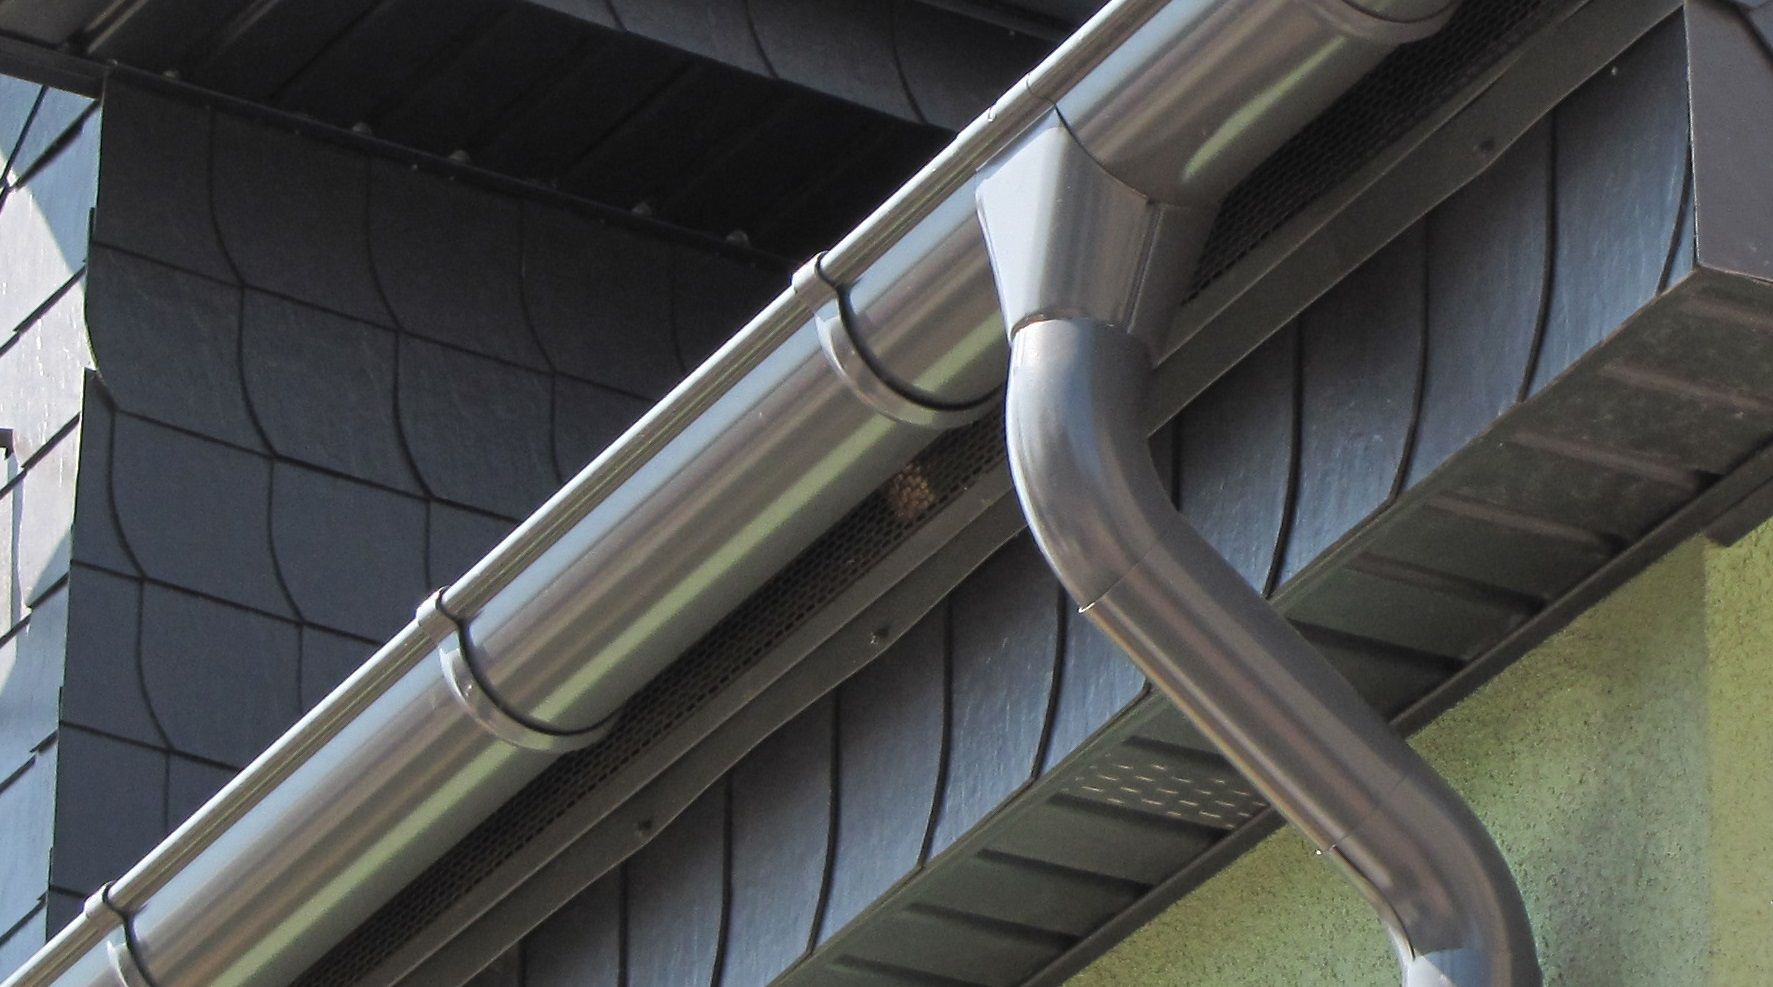 Zinc Gutters Are A Premium Alternative For Vancouver Home And Business Owners Let S Find Out If This Architectural Metal Gutters Galvanized Gutters Downspout